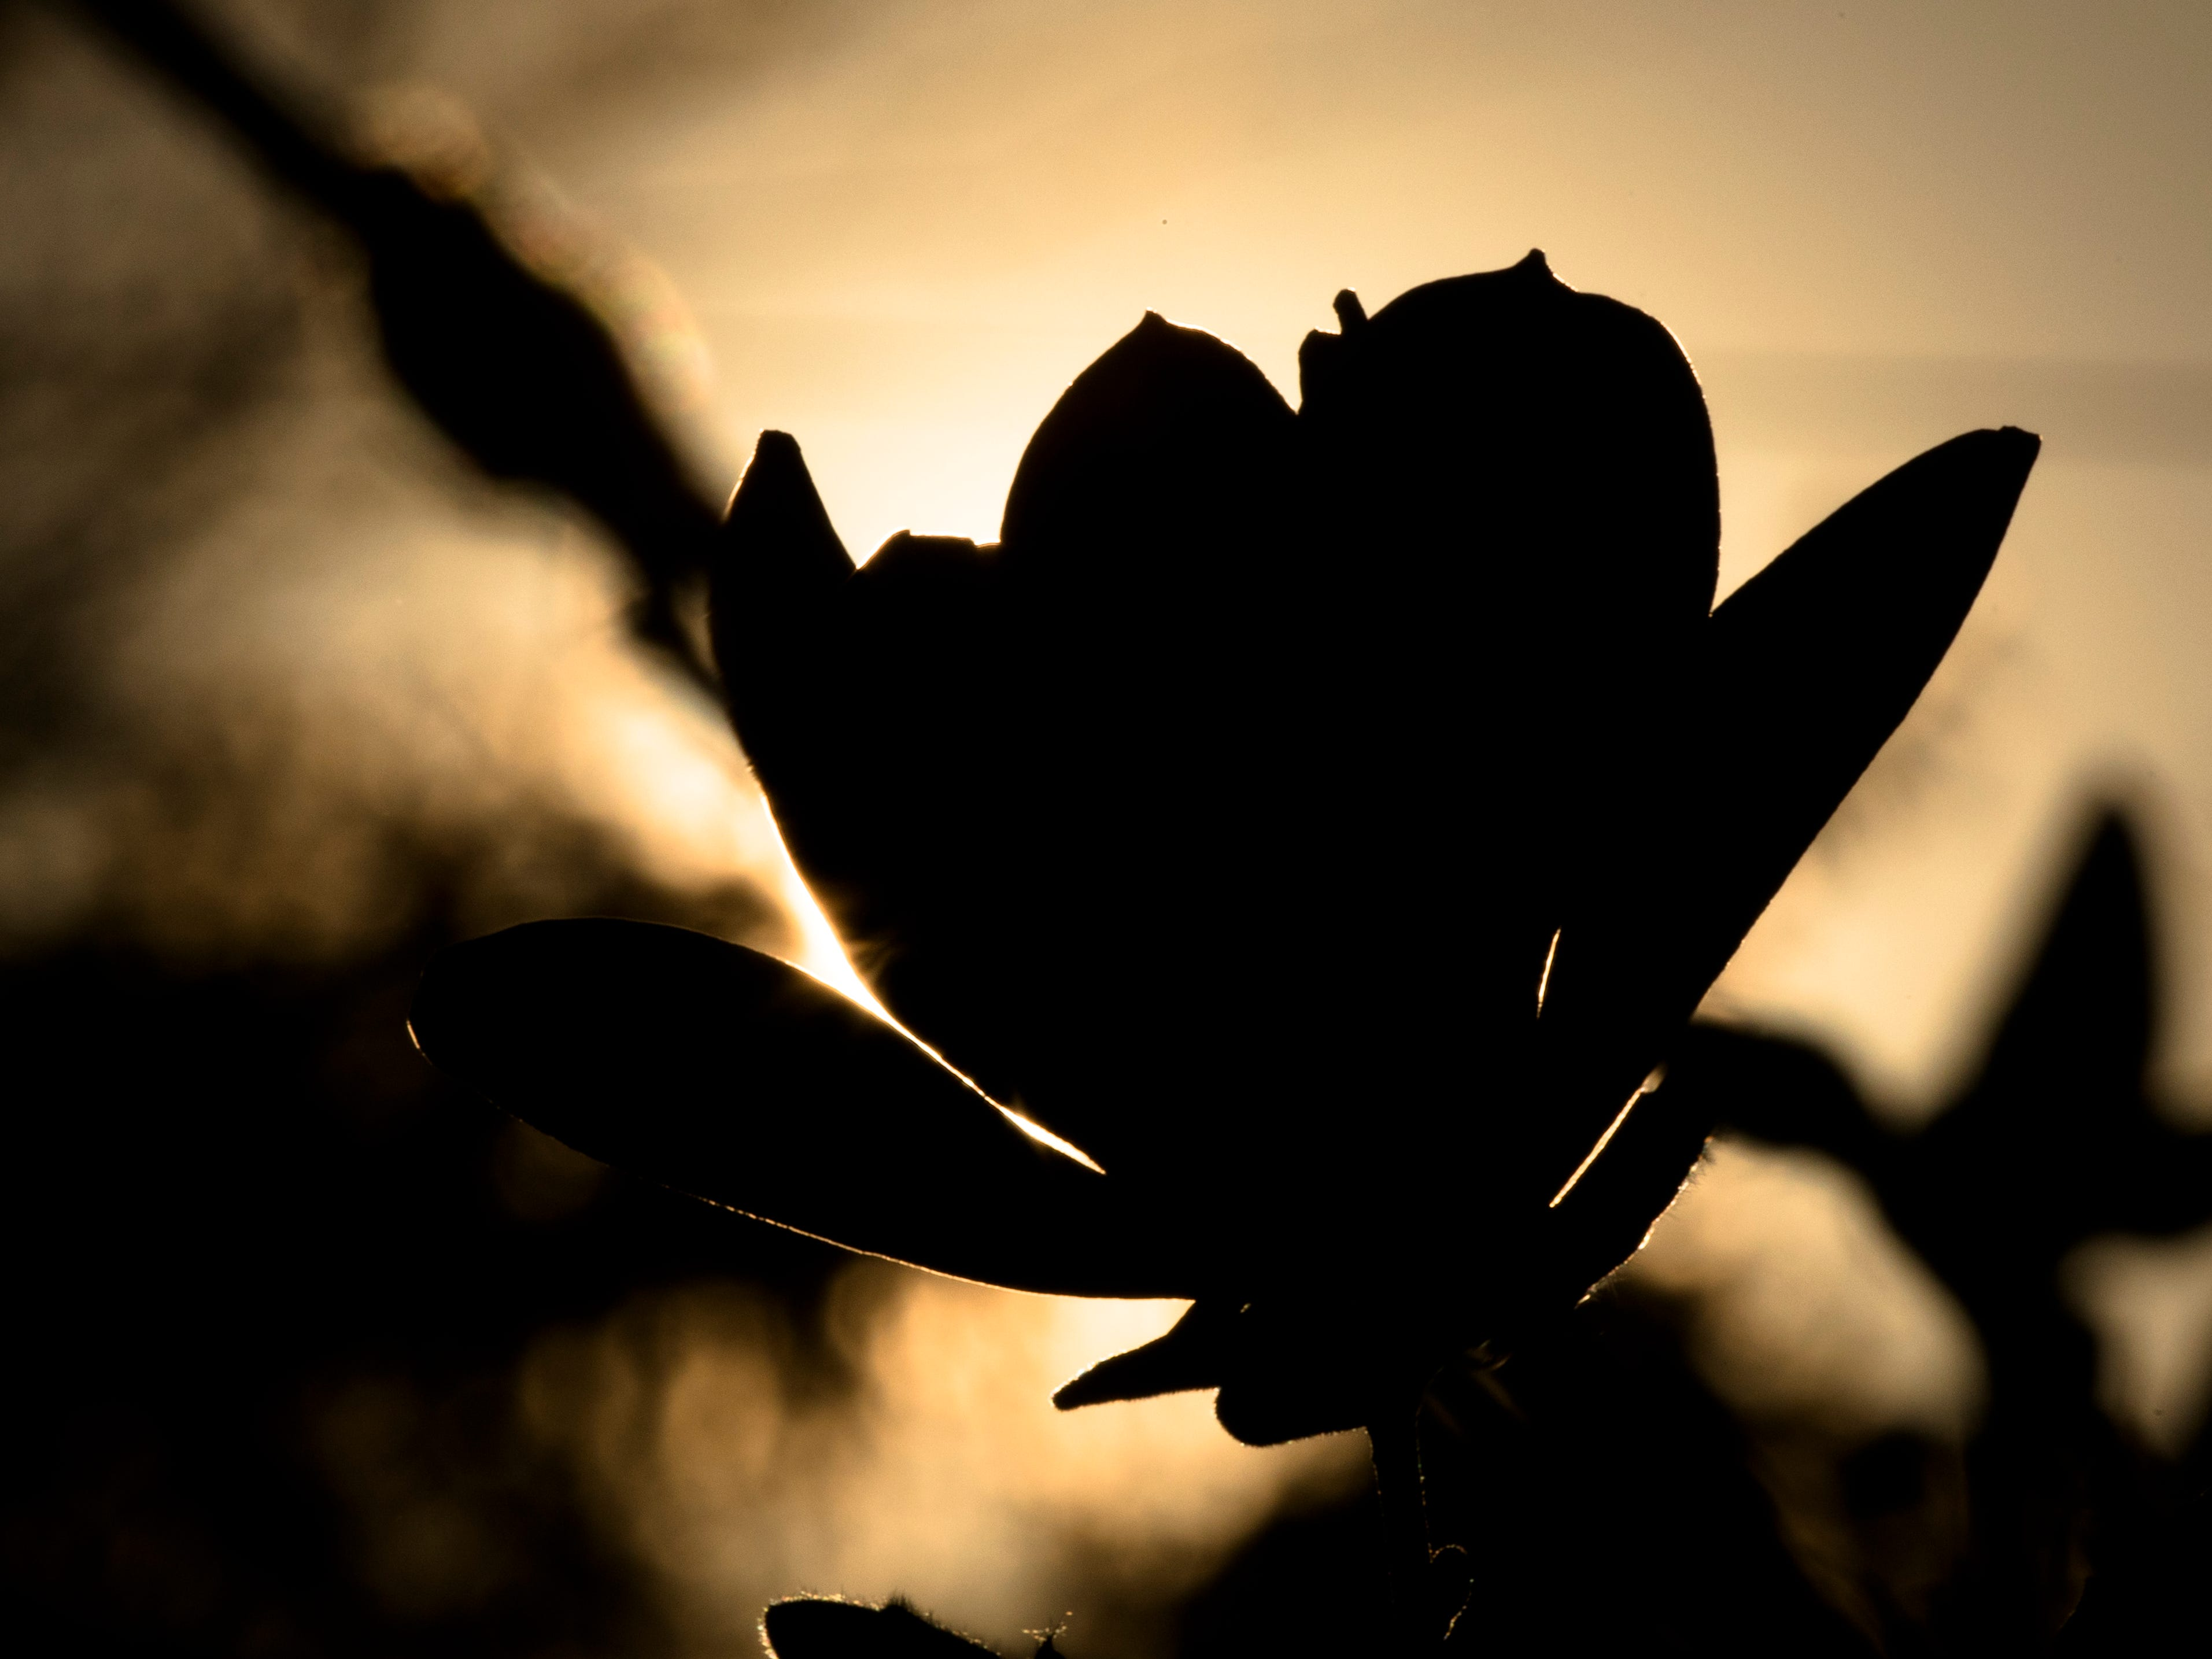 A magnolia flower at sunset in West Price Hill on Tuesday, April 9, 2019.